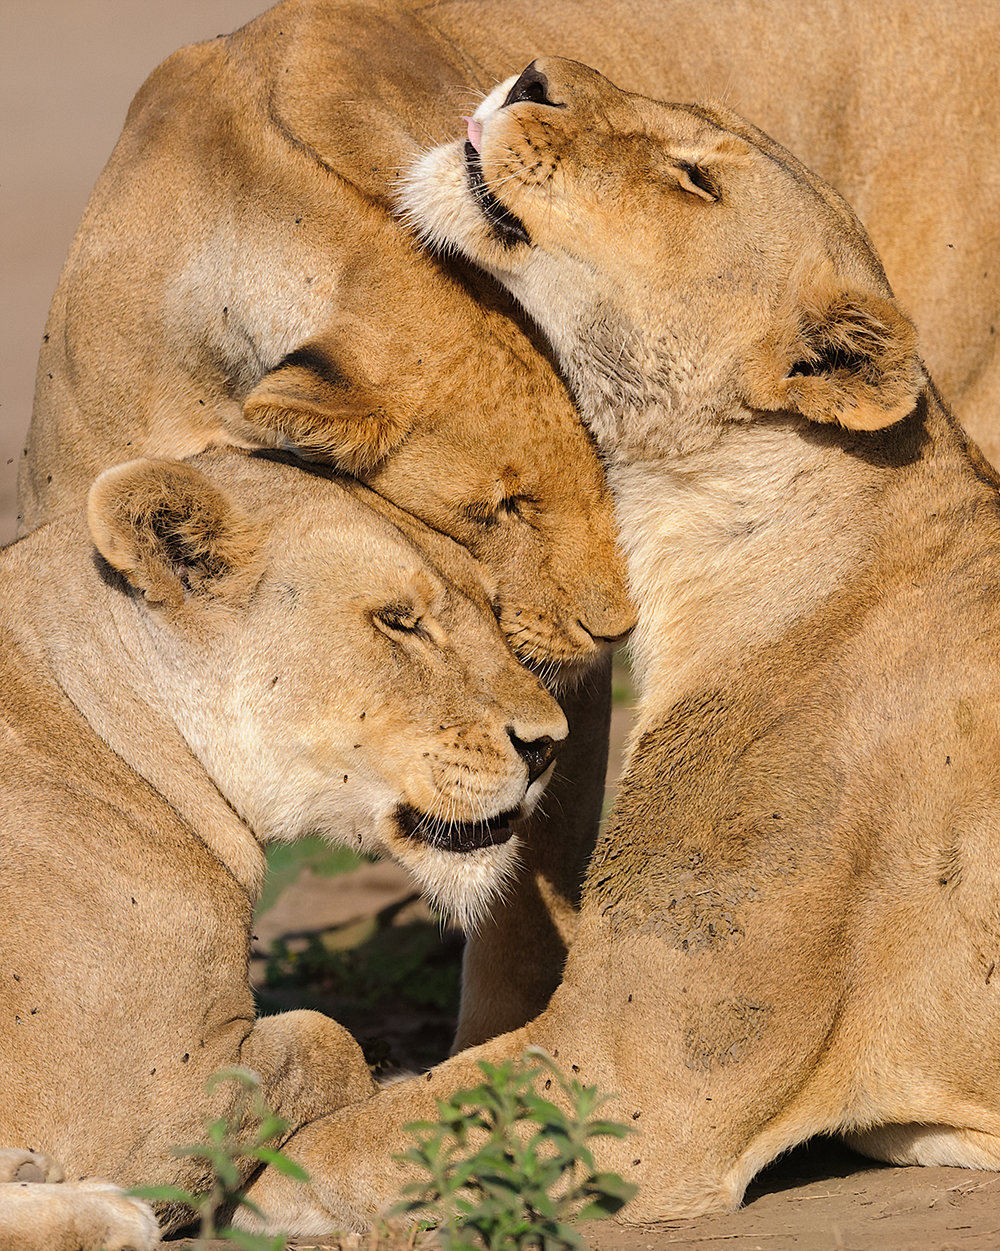 Lionesses - Serengeti National Park (Tanzania) - Feb. 2011